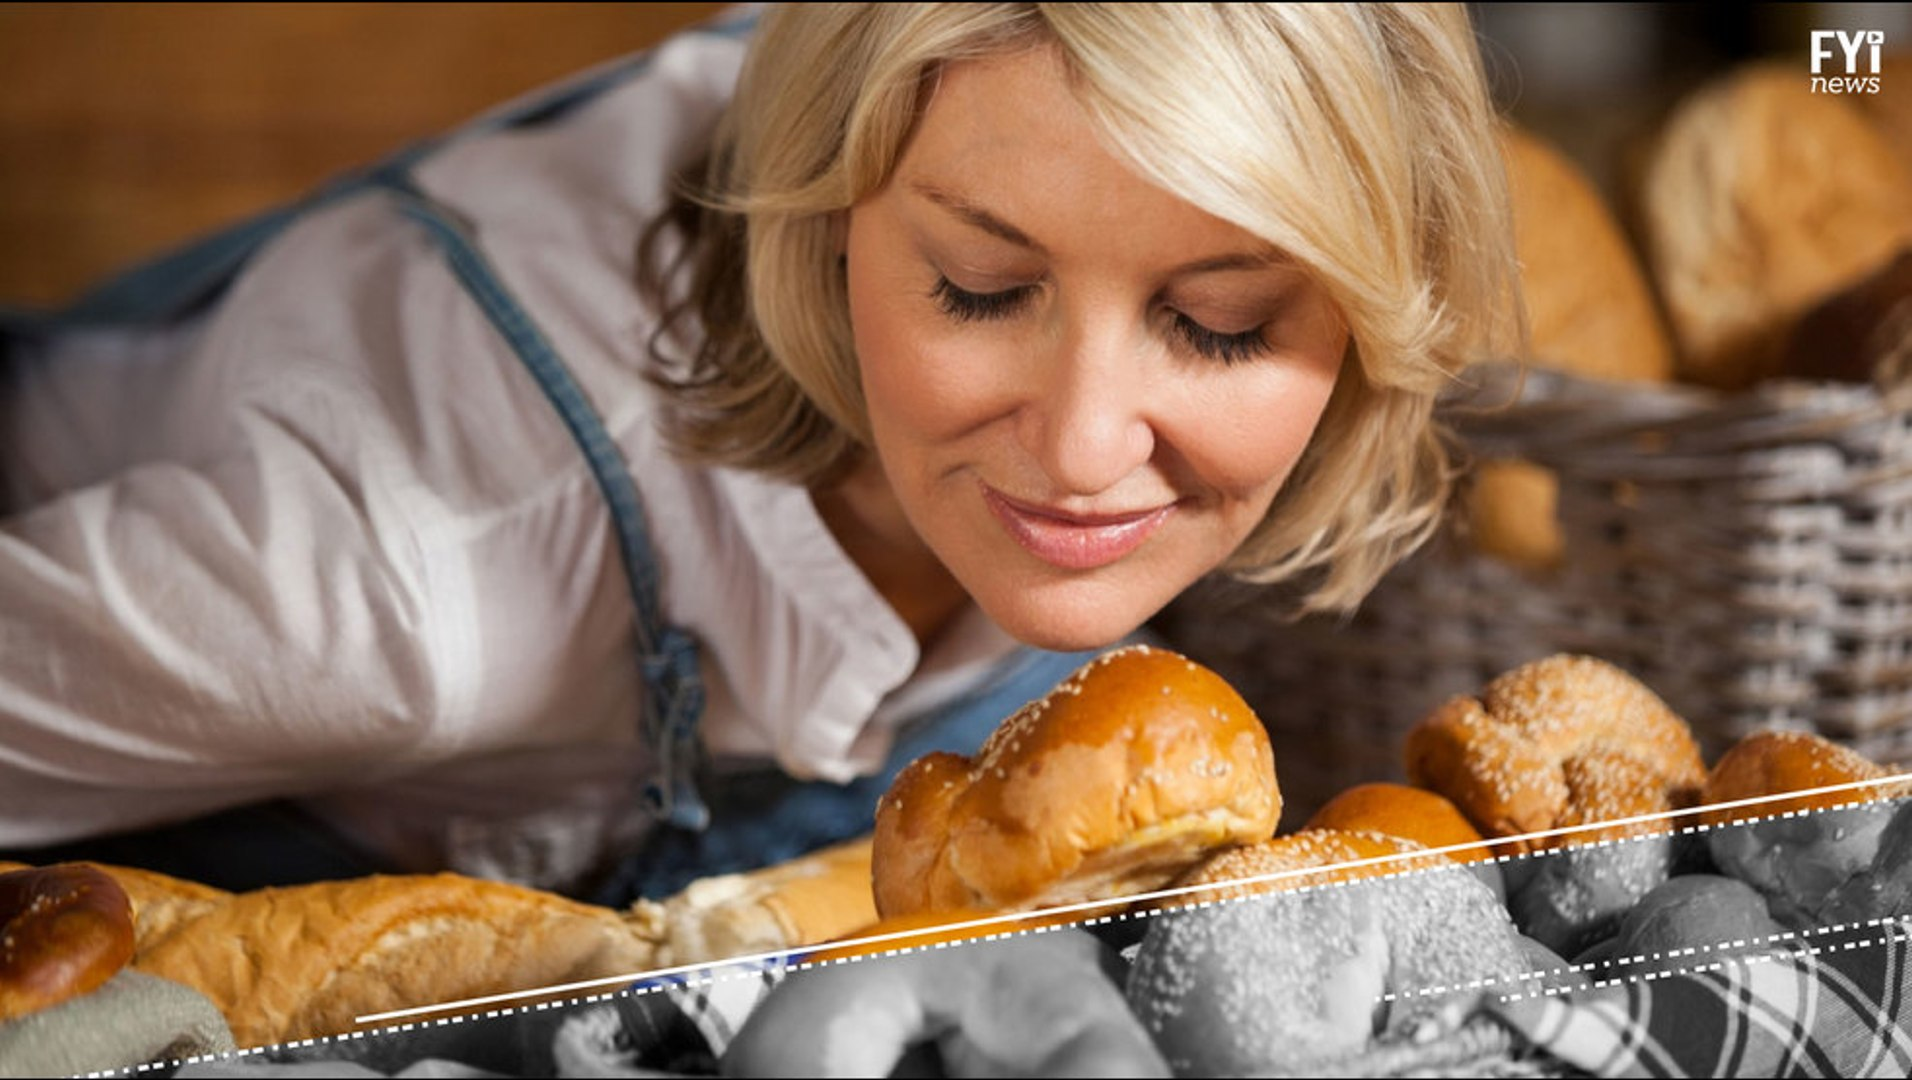 Smelling Food Harms WeightLoss